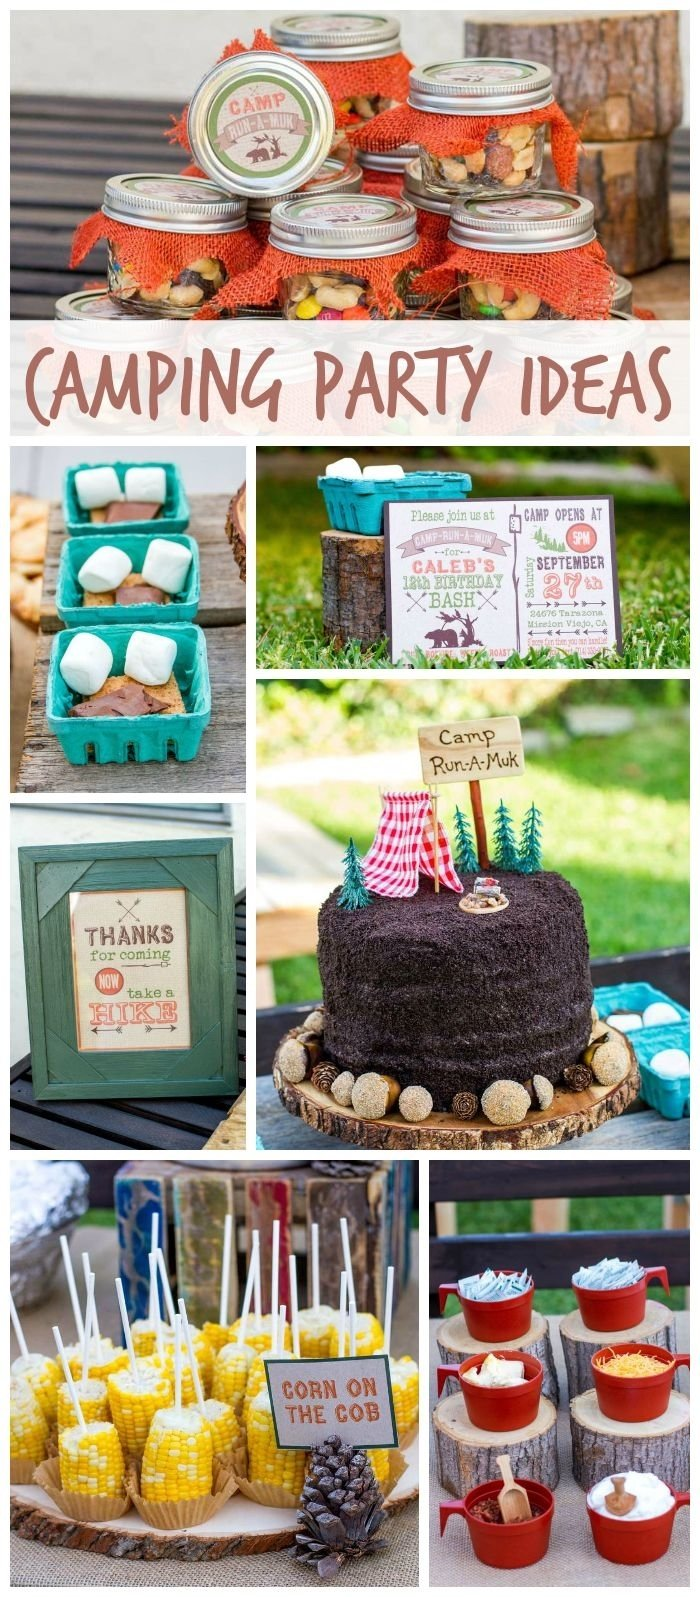 10 Most Popular Boys 8Th Birthday Party Ideas a backyard camping boy birthday party with fun foods smores mason 2020